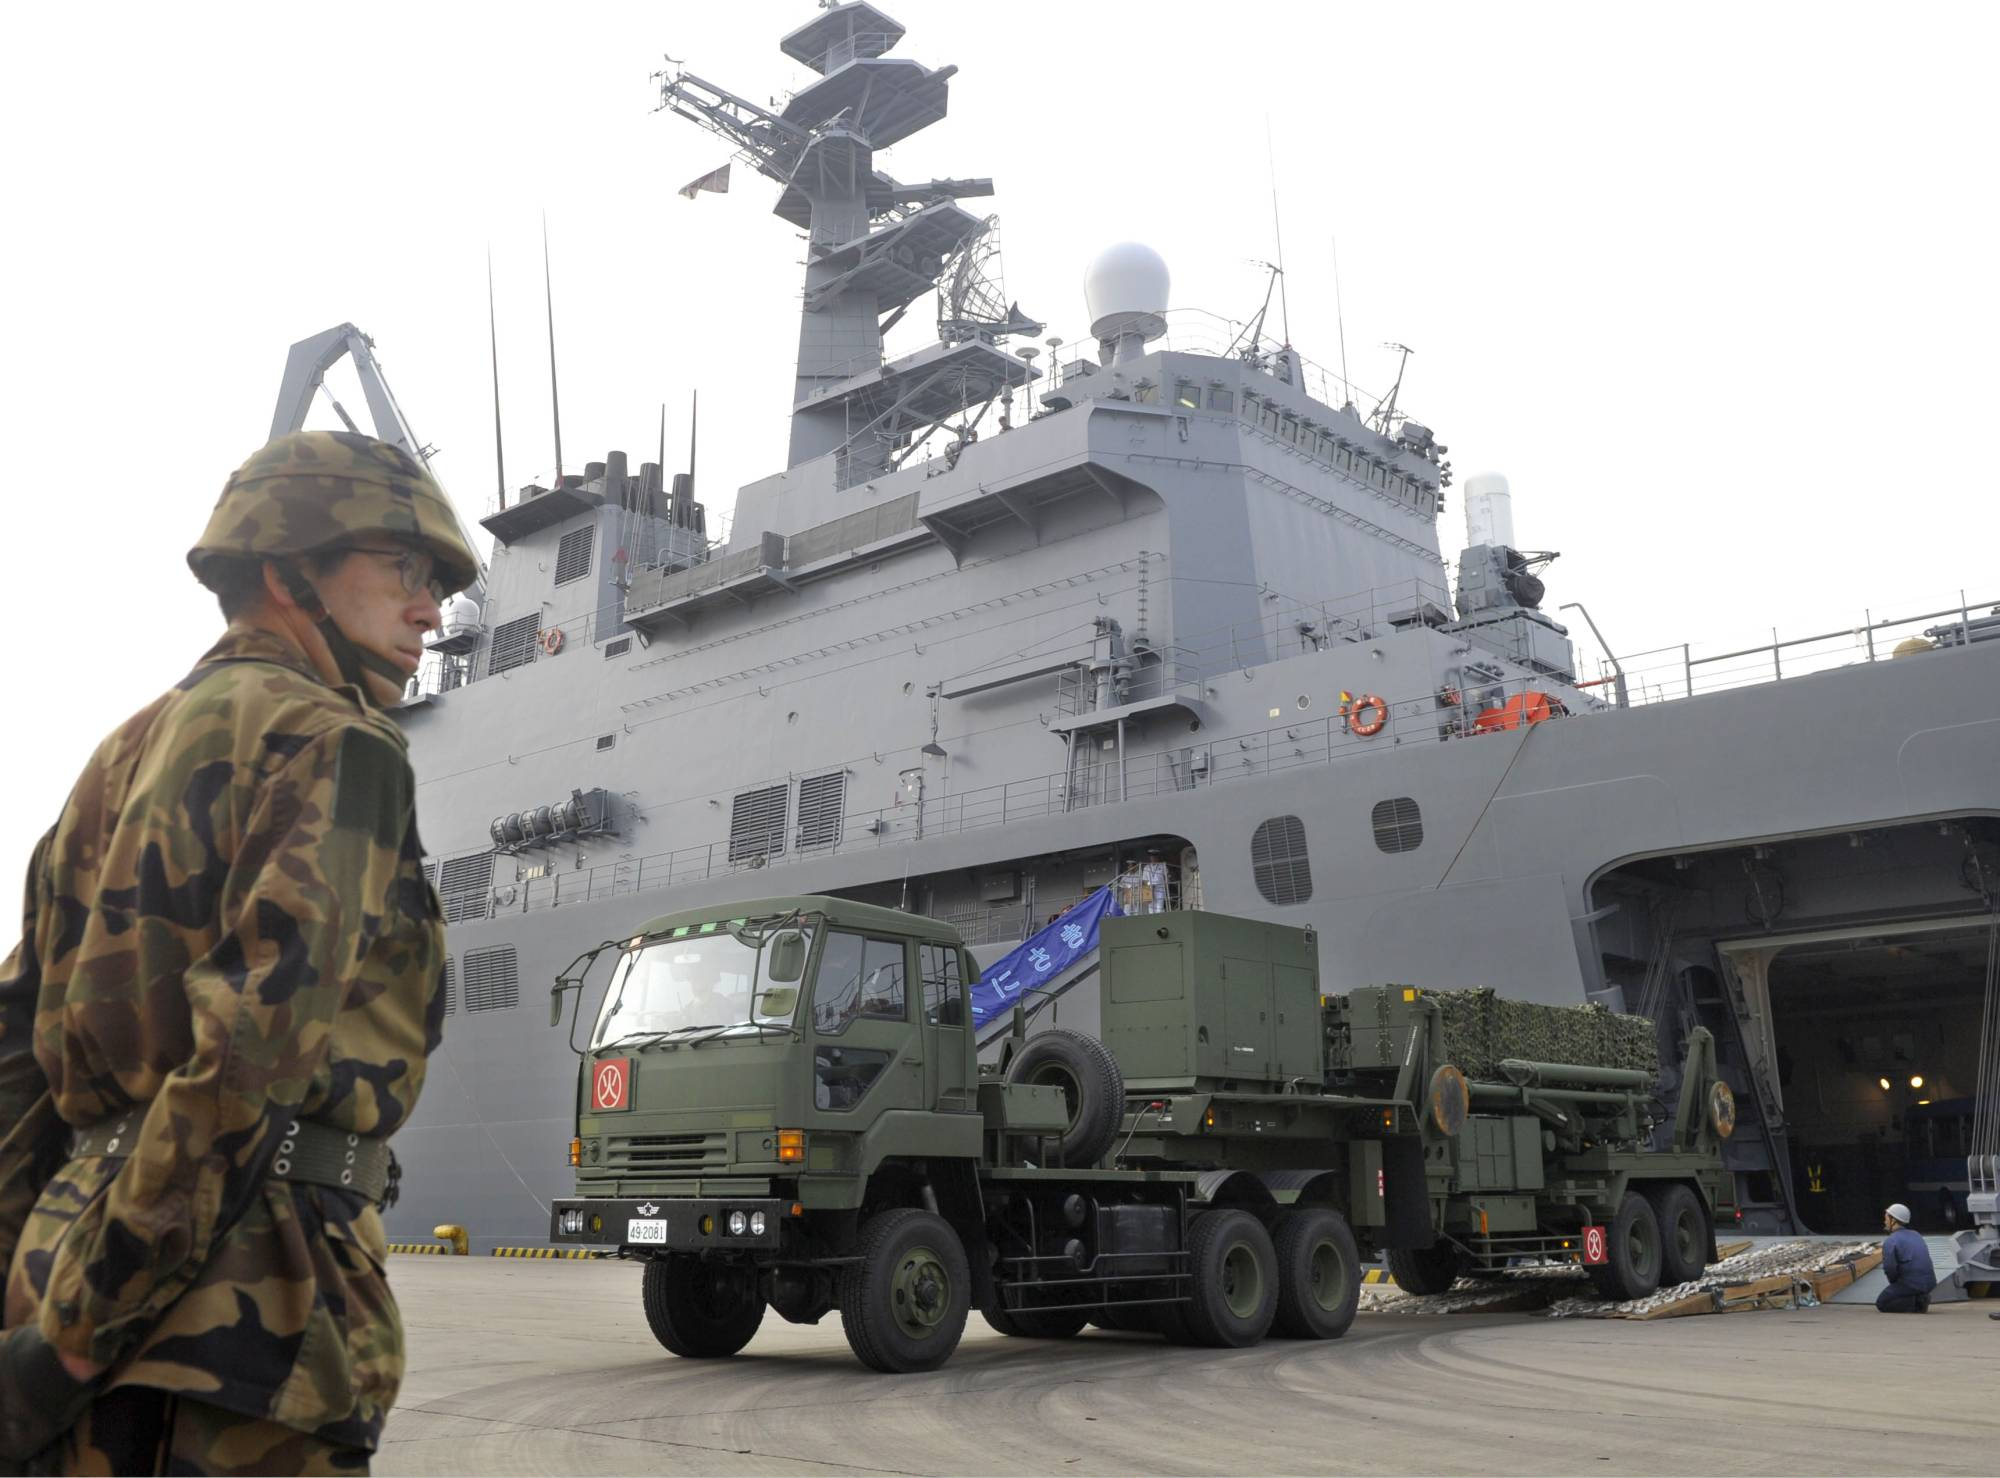 A truck loaded with Patriot Advanced Capability-3 missiles disembarks from a Japan Maritime Self-Defense Force transport ship at Ishigaki port in April 2012. | KYODO